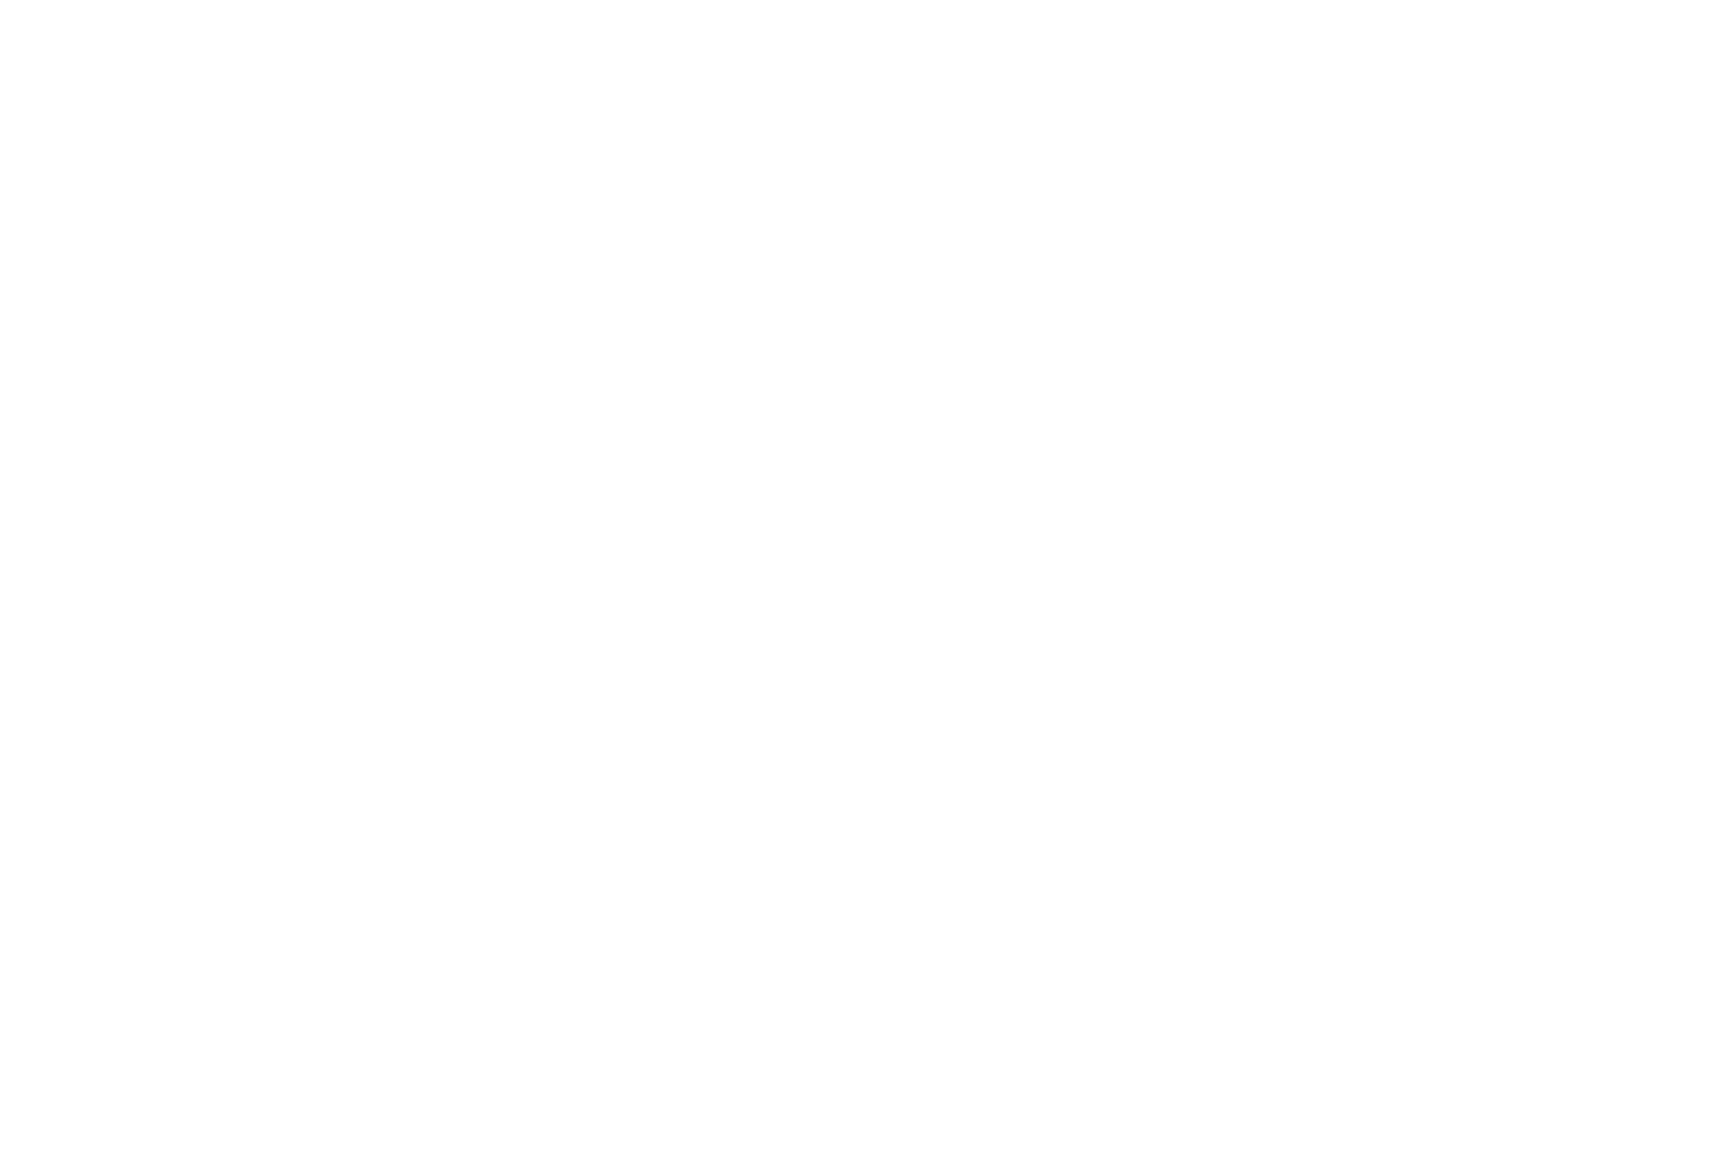 OFFICIAL SELECTION - Hollywood Dreams 4th5th Annual International Film Festival and Writers Competition 20202021 - 2021